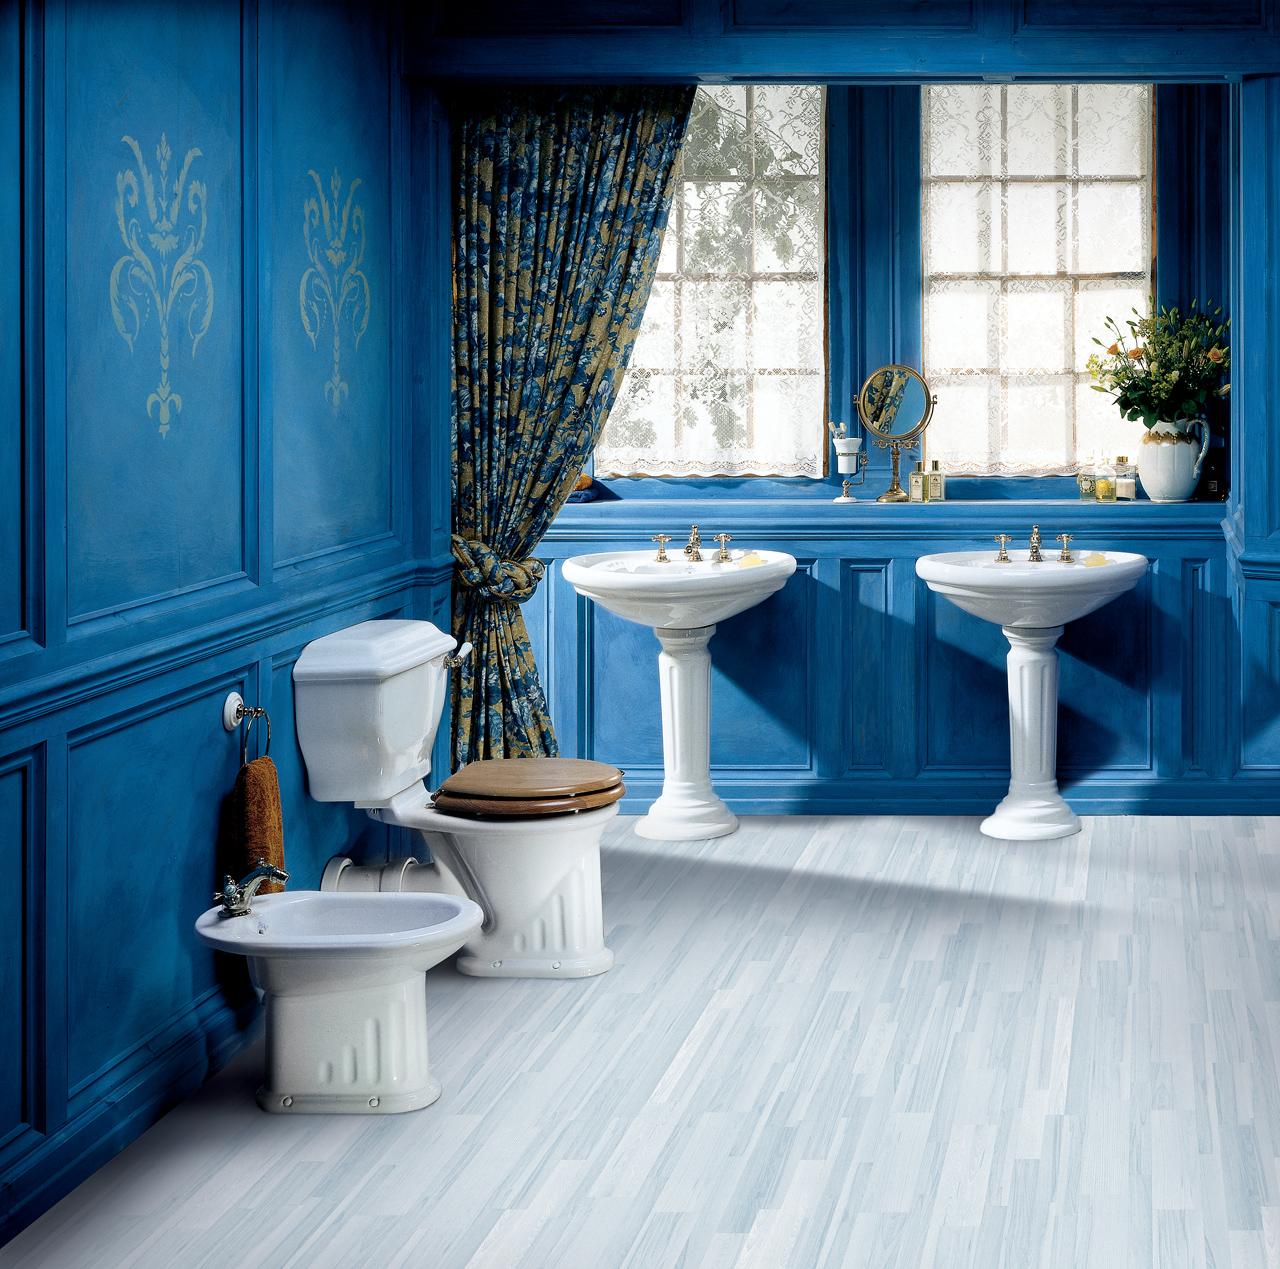 Classic Bathrooms: Imperial Bathrooms - Windsor-Main-picture